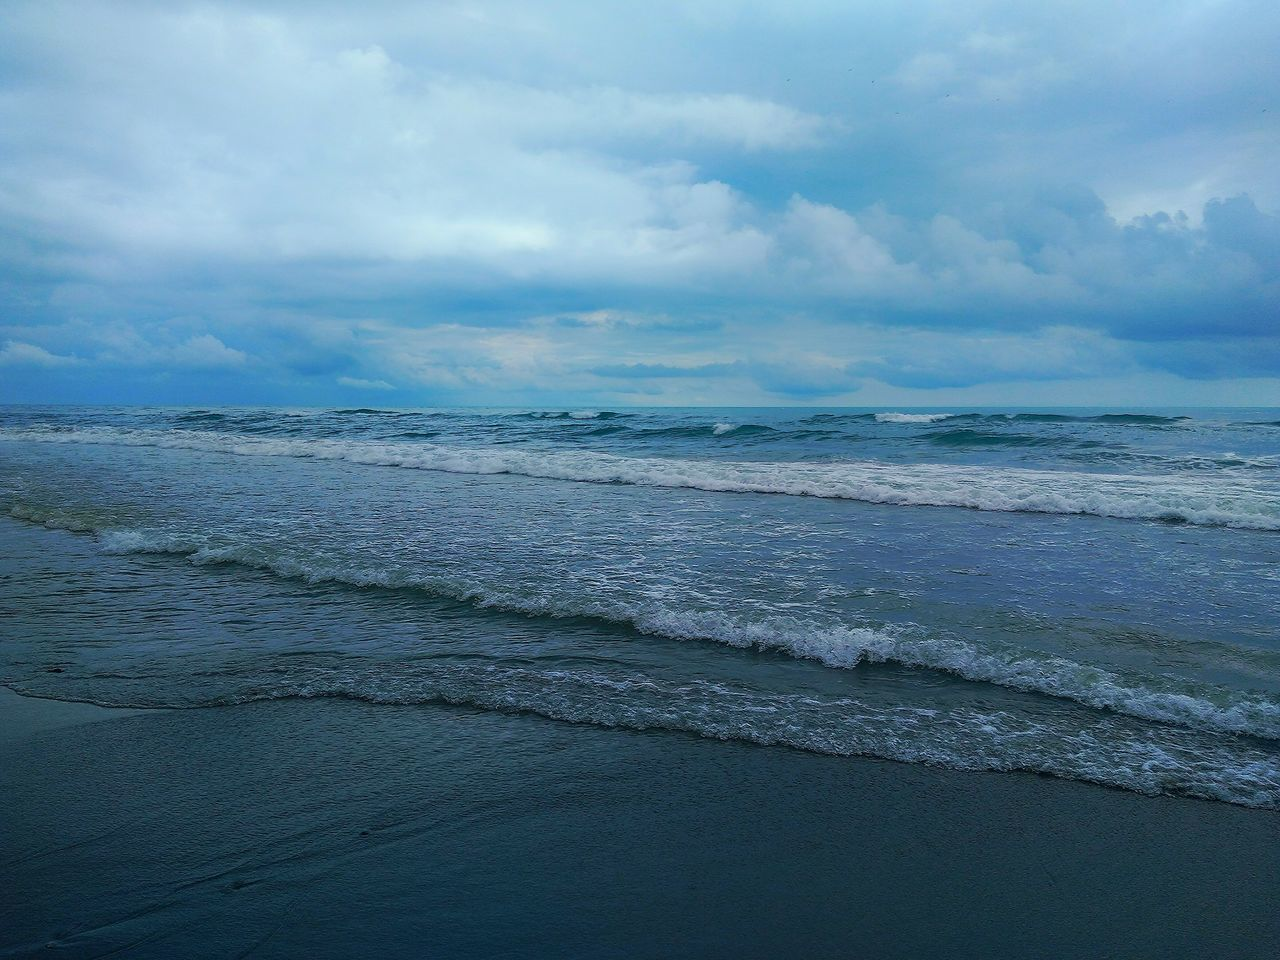 sea, nature, beauty in nature, water, sky, scenics, beach, tranquility, horizon over water, wave, tranquil scene, cloud - sky, outdoors, no people, day, sand